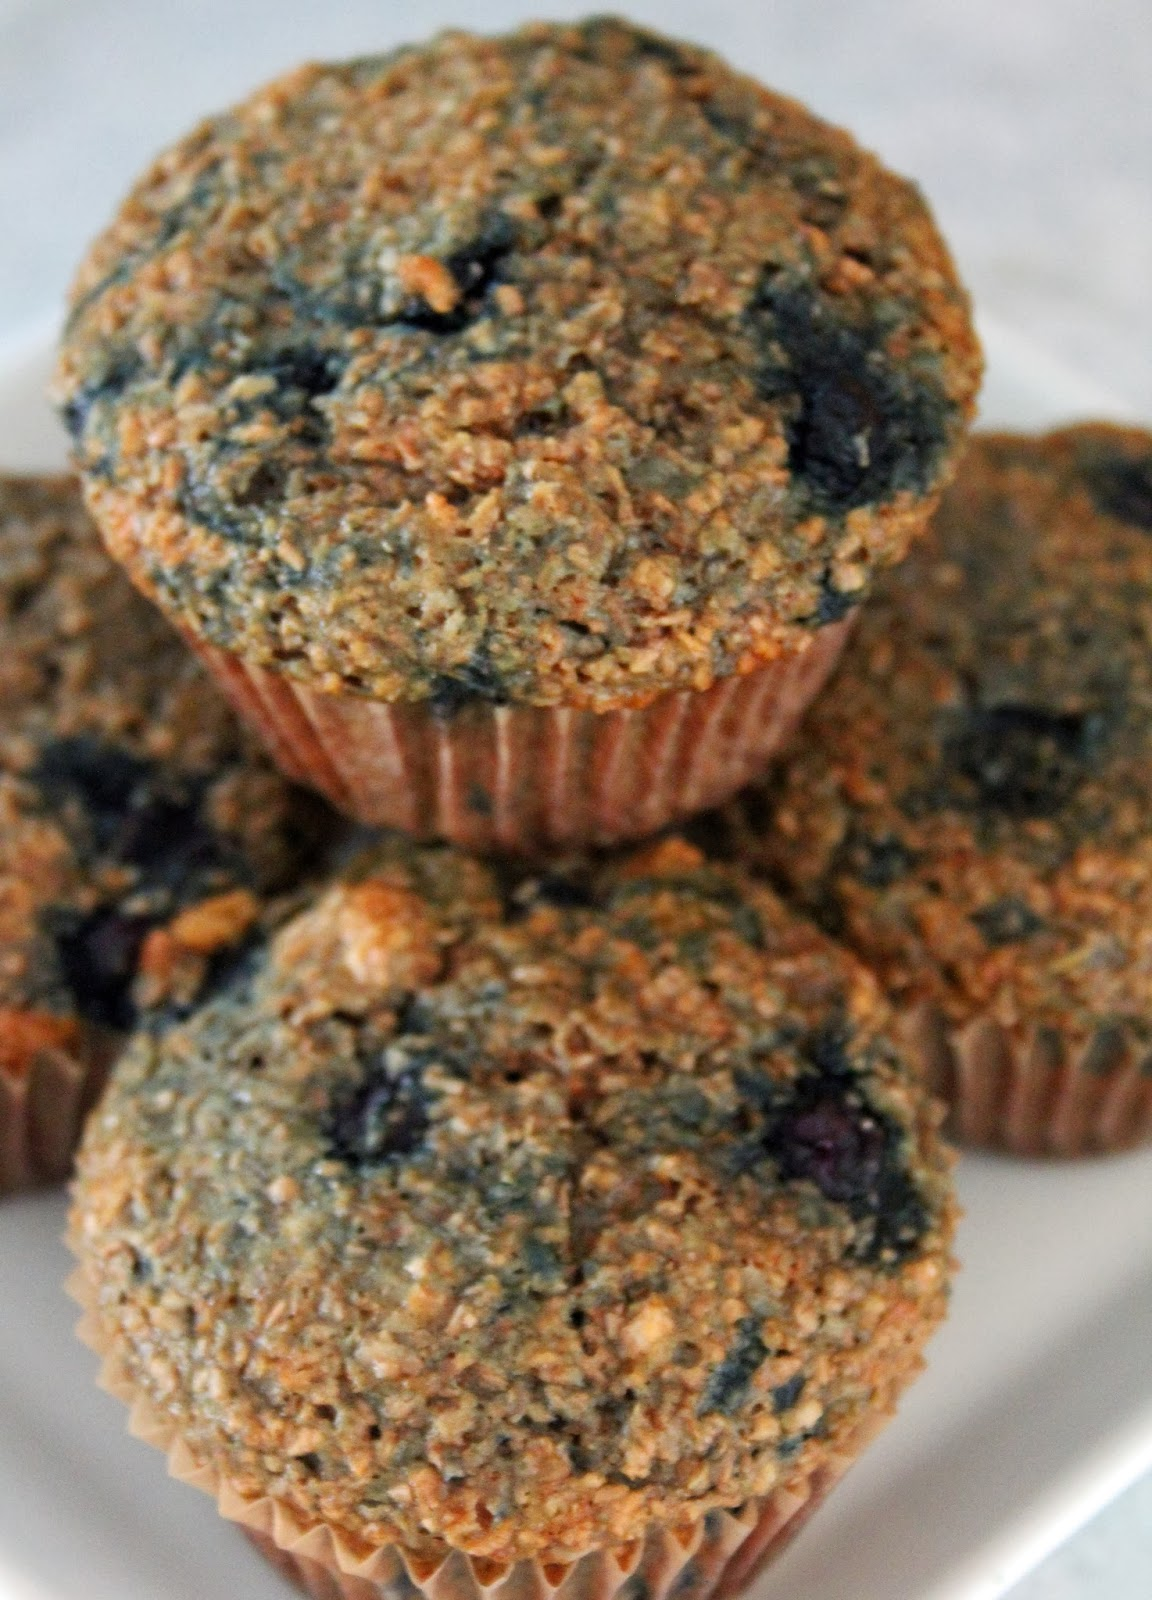 Jo and Sue: Blueberry Banana Bran Muffins